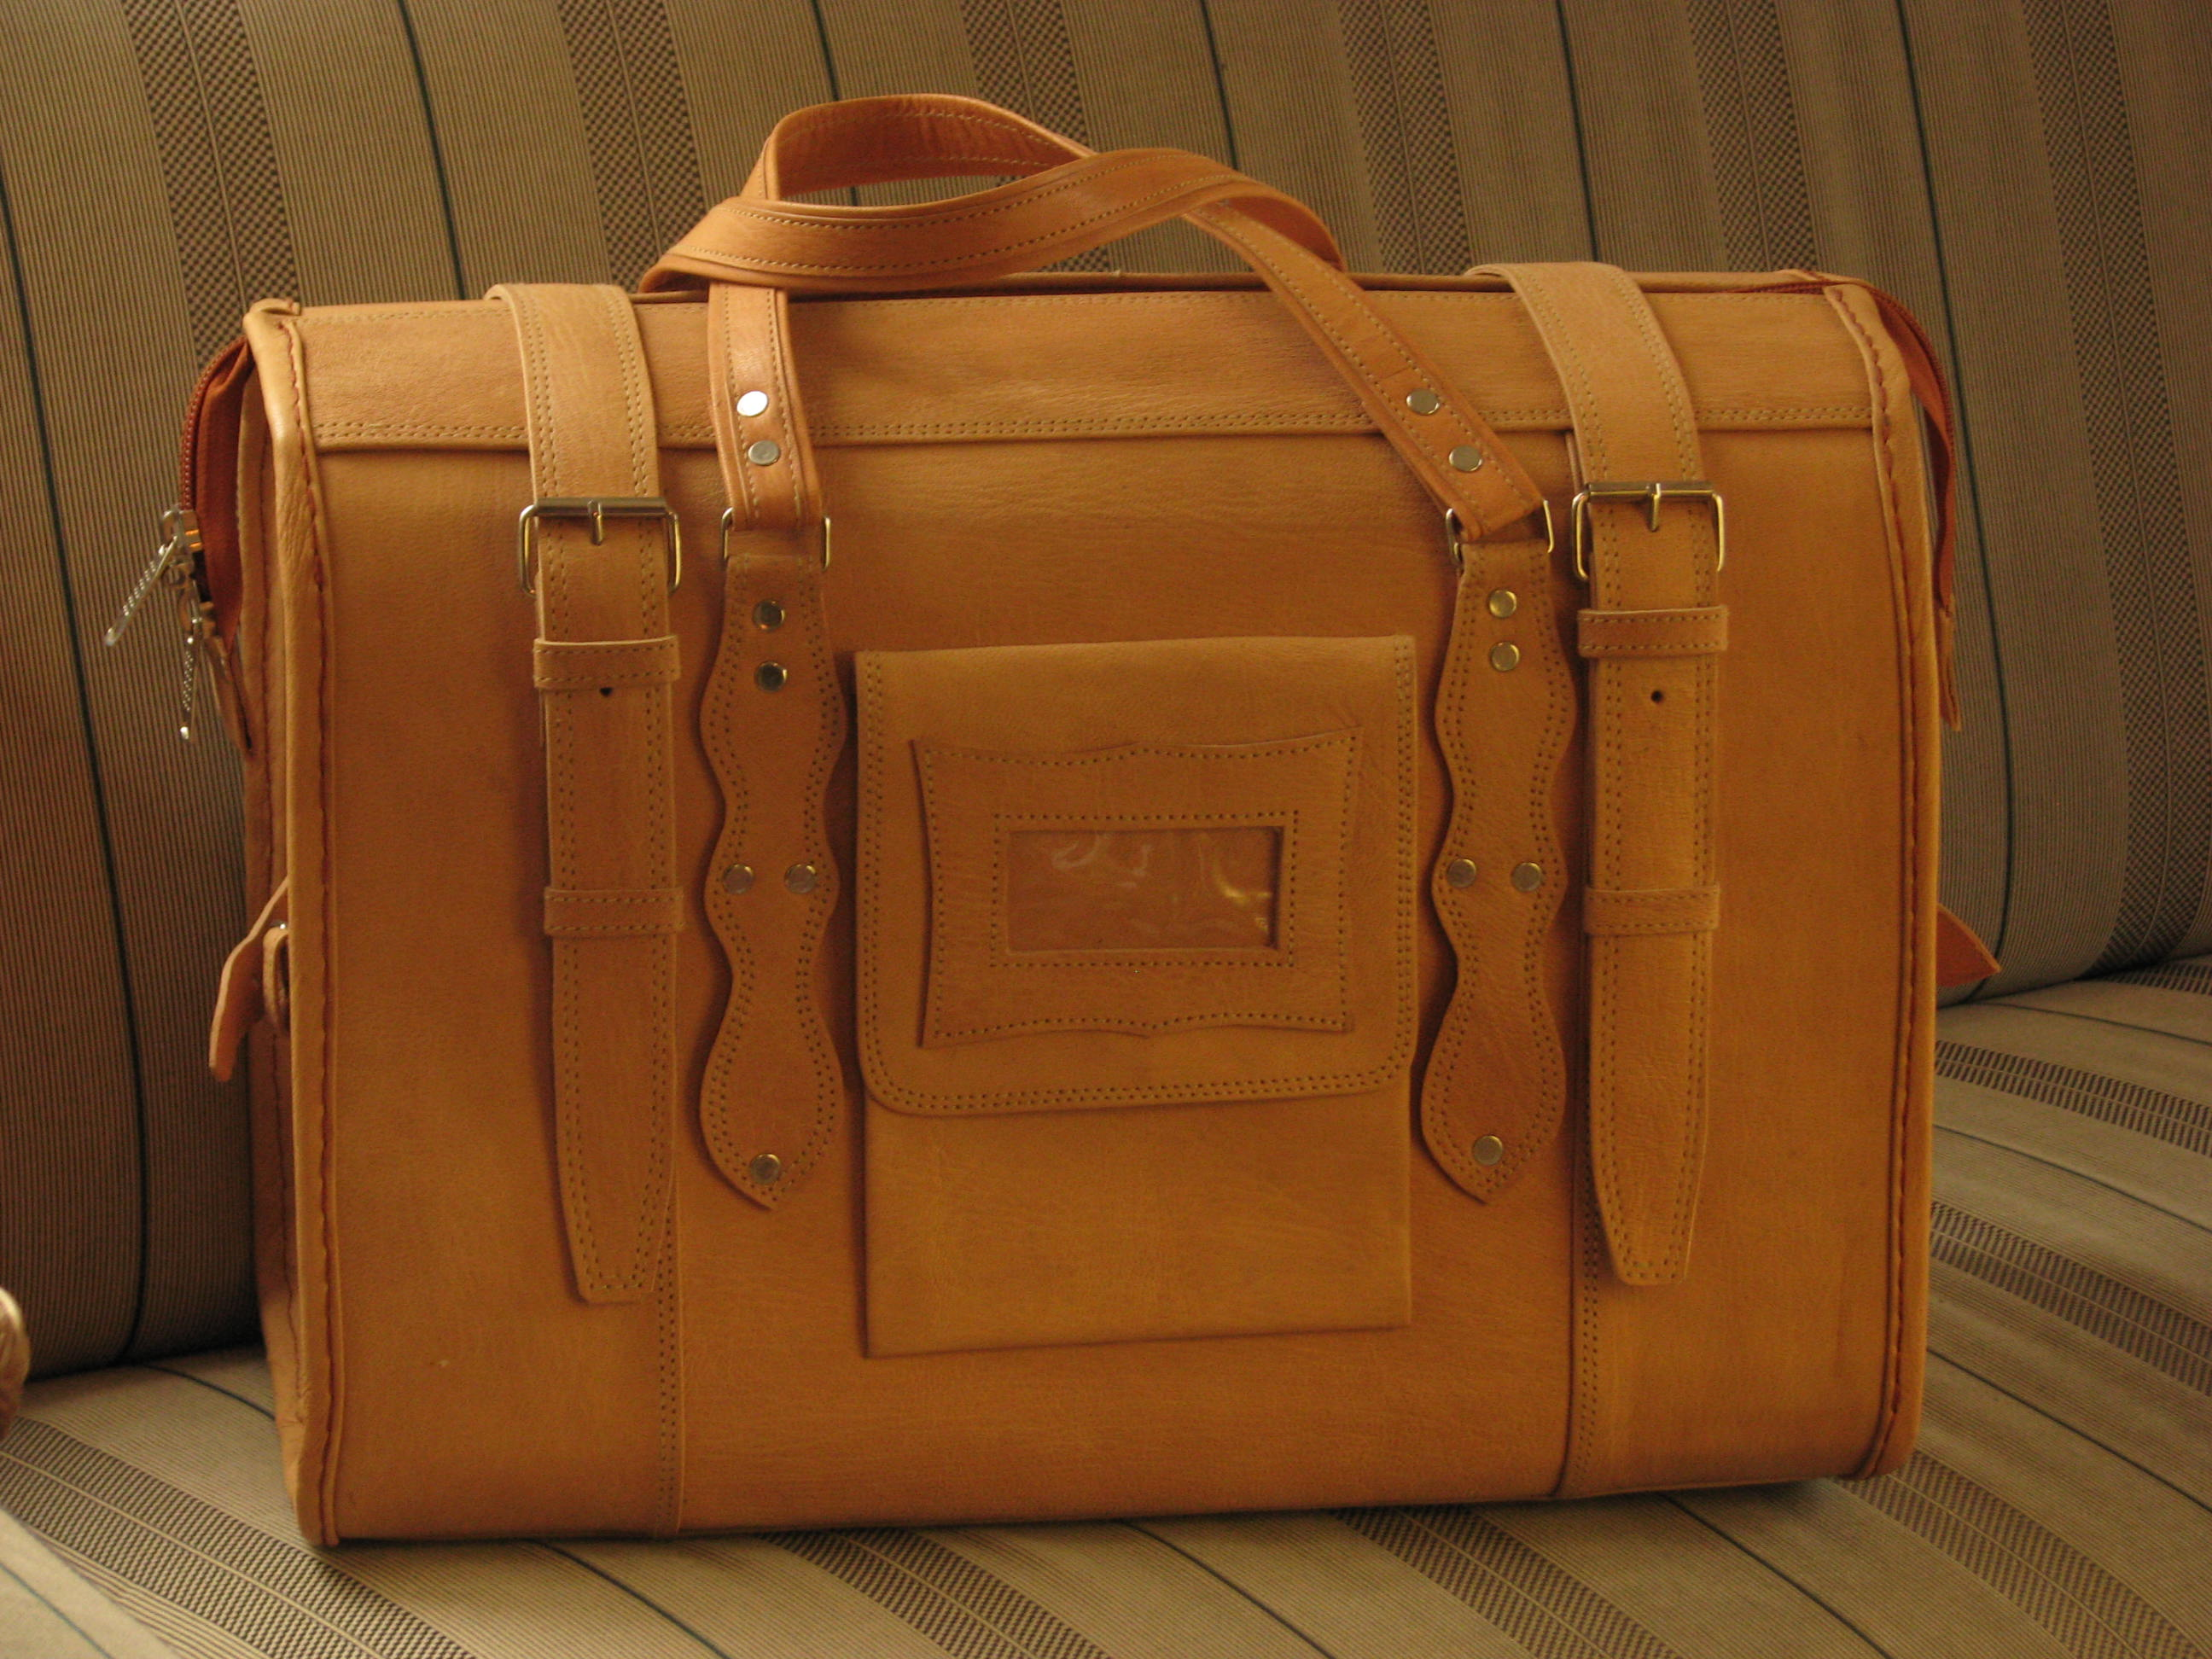 Cabin size travel bag marco polo genuine leather travel for Cabin bag size